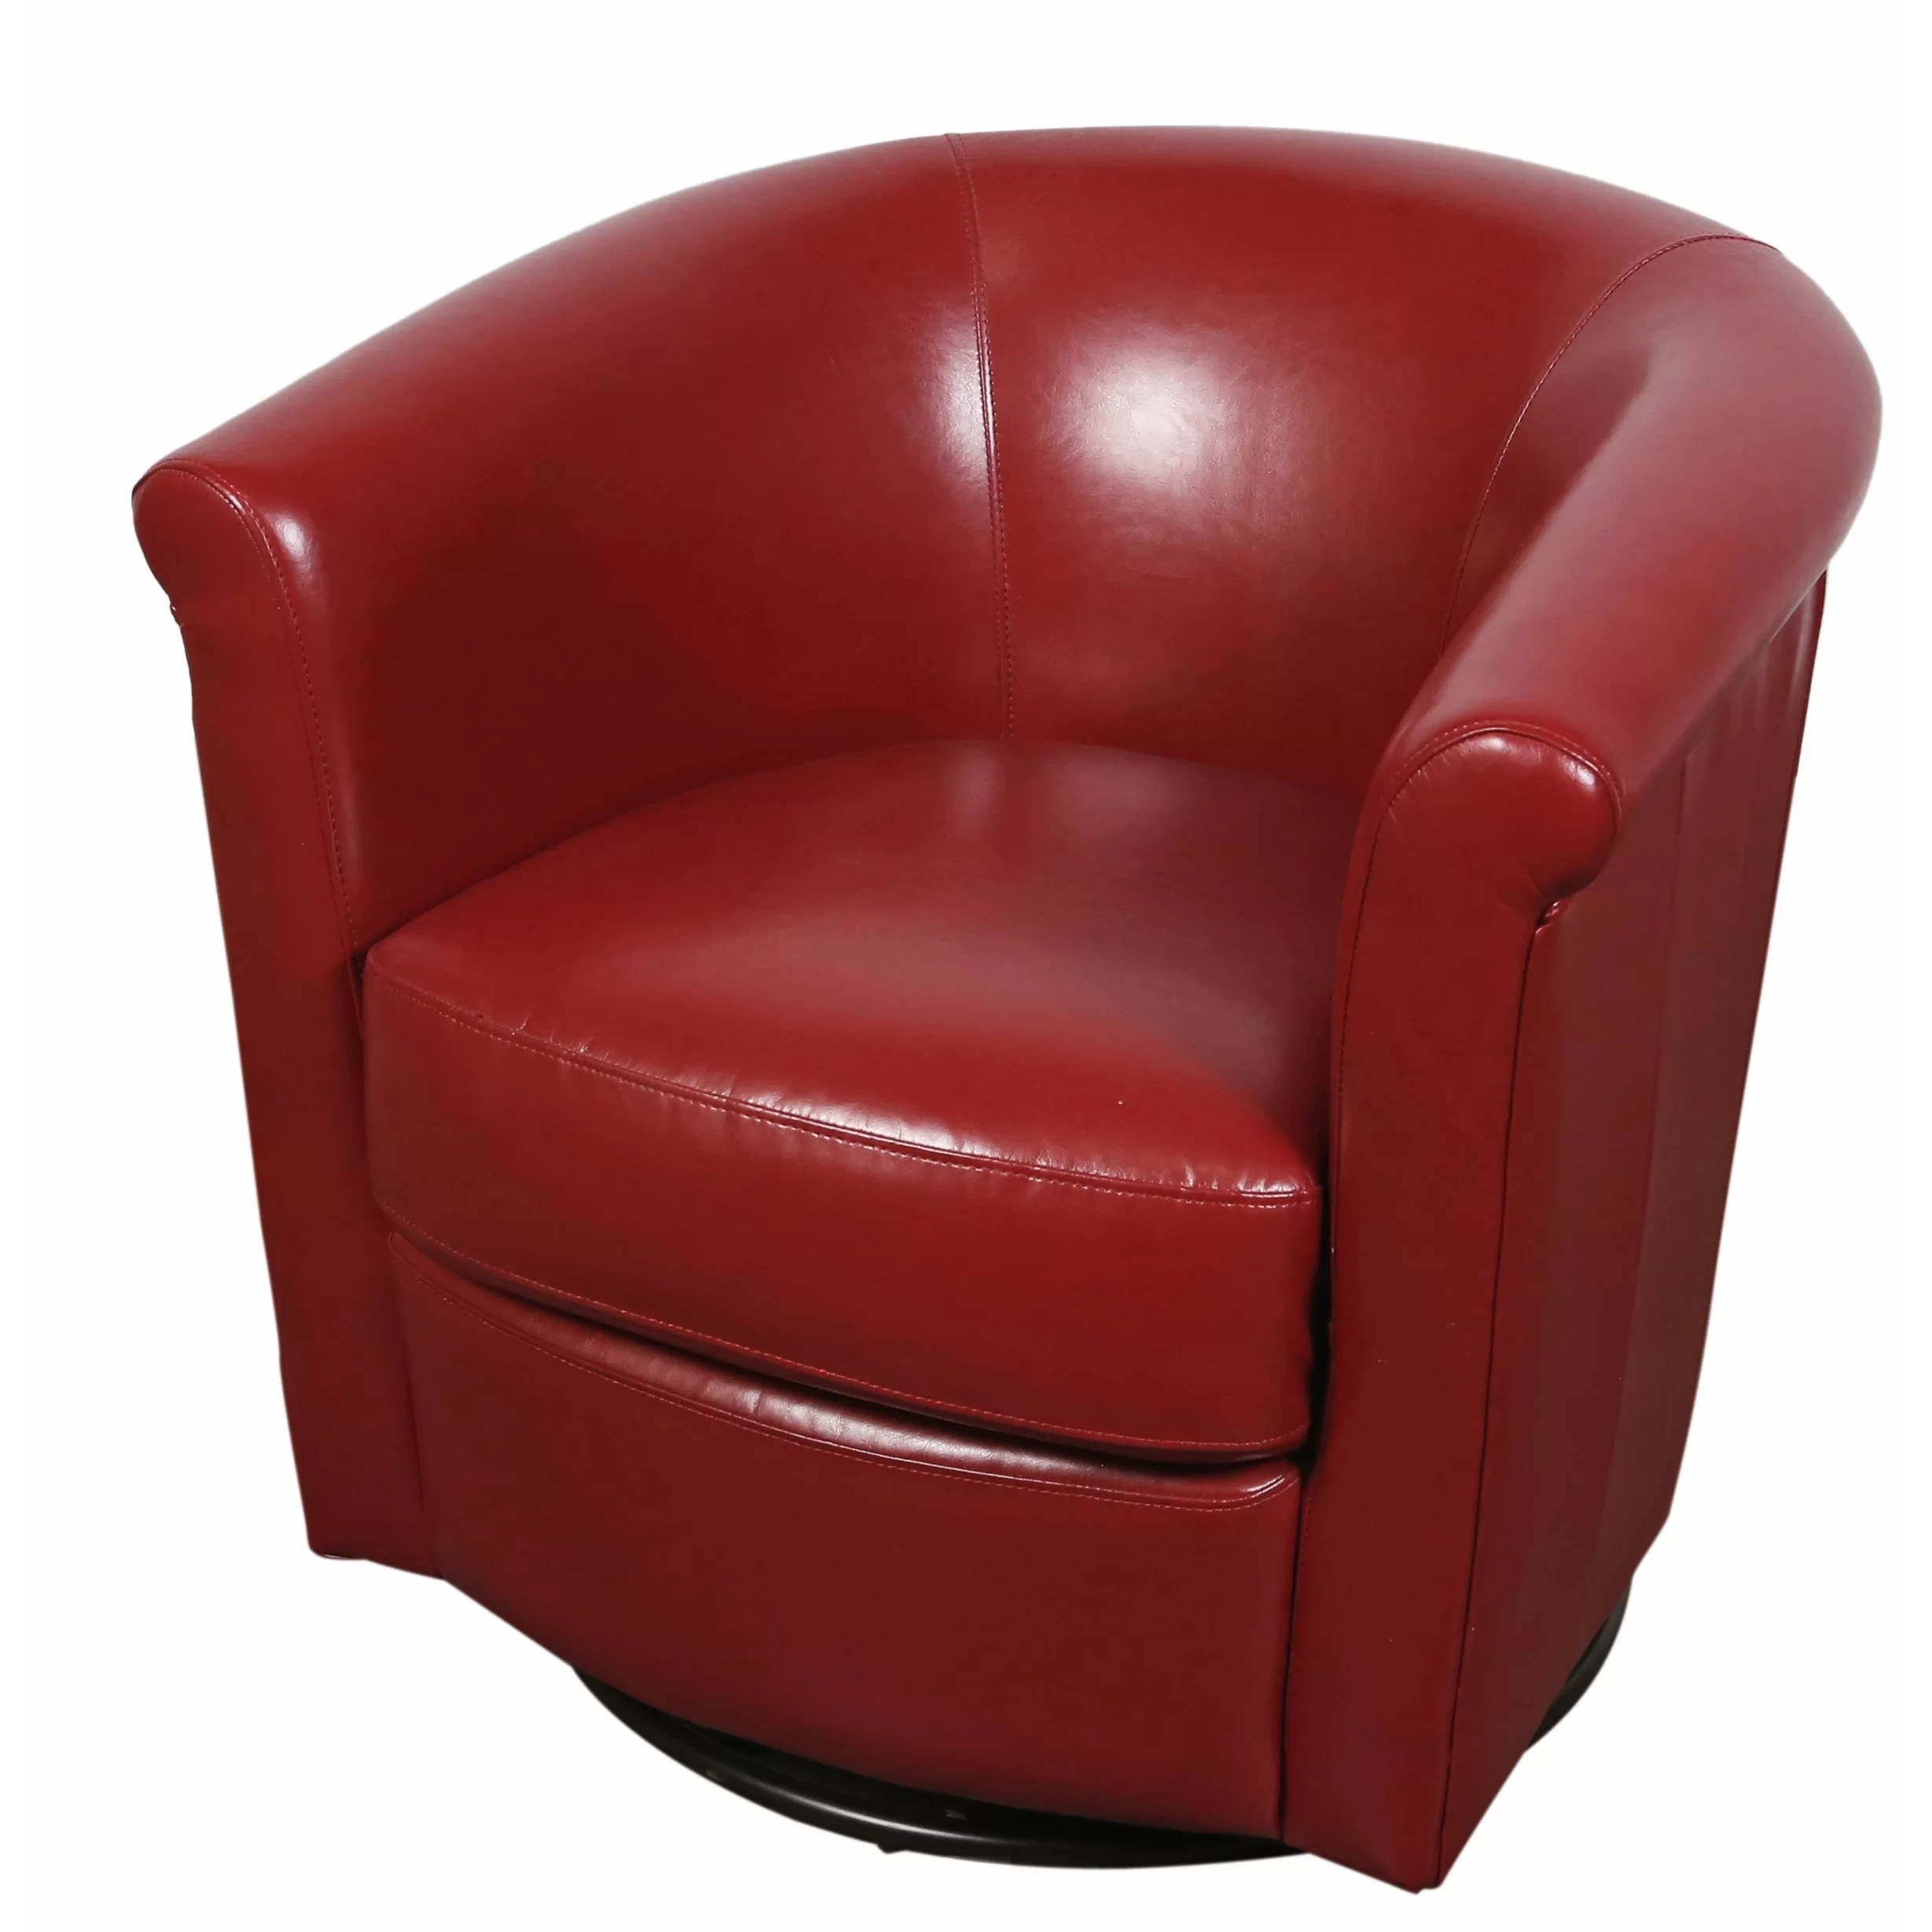 Barrel Chair Swivel Porter International Designs Marvel Swivel Barrel Chair